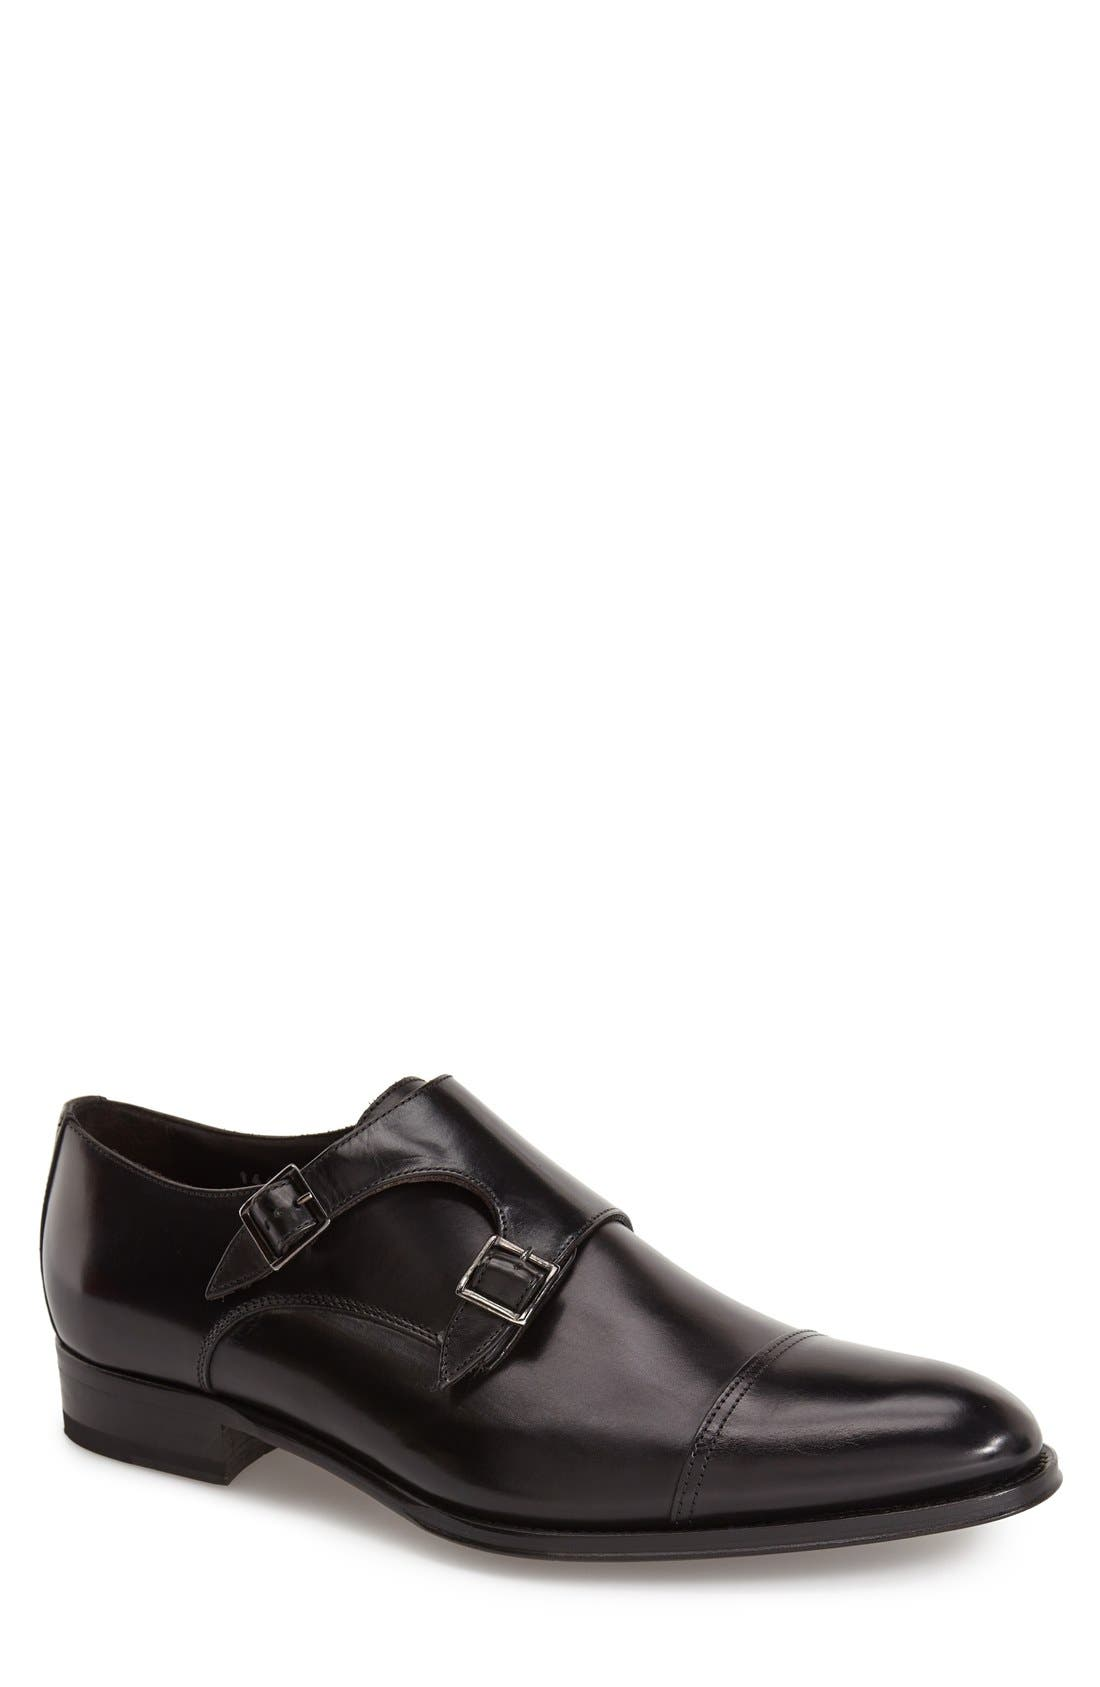 Main Image - To Boot New York 'Medford' Double Monk Strap Shoe (Men)